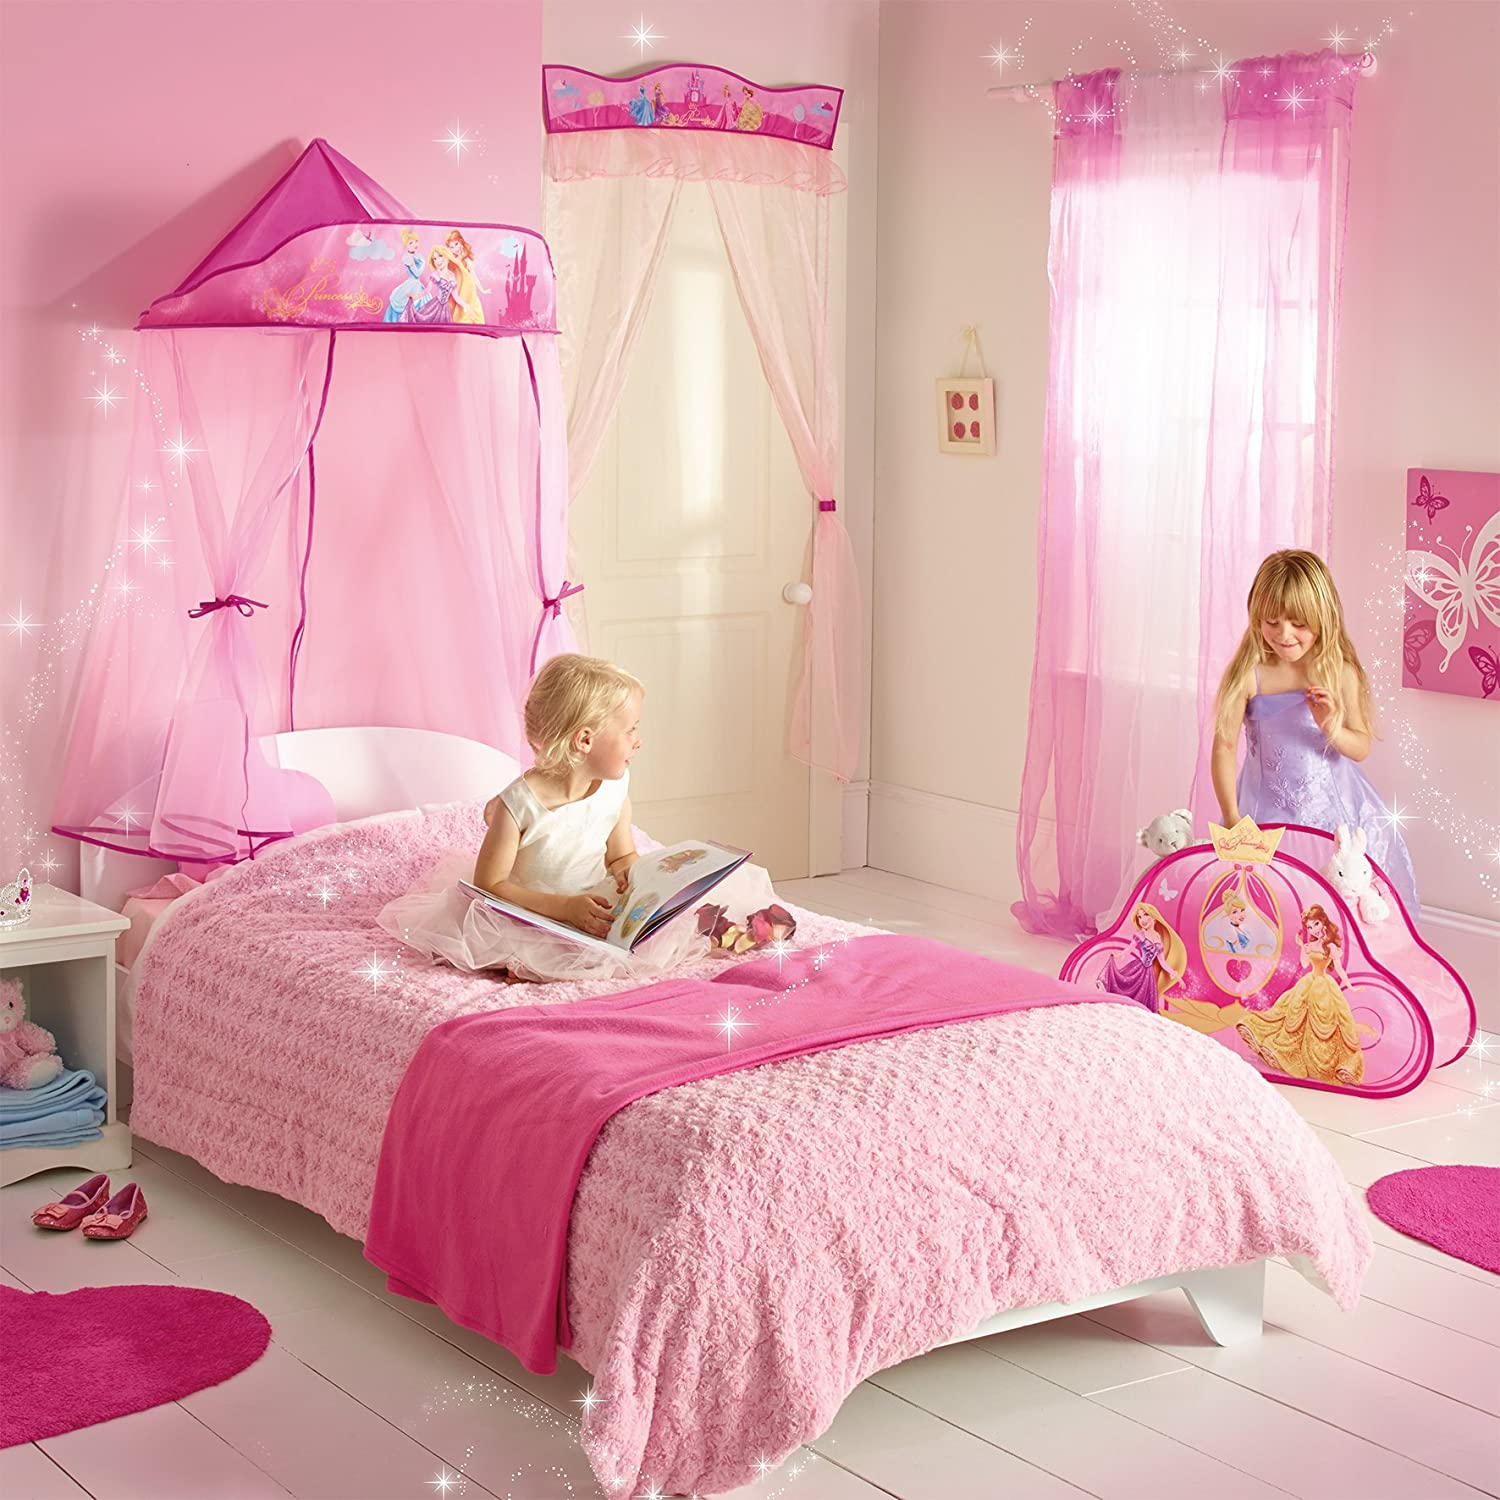 Amazon.com Disney Princess Bed Canopy for Single Bed and Toddler Bed by Disney Princess Wall Art  sc 1 st  Amazon.com & Amazon.com: Disney Princess Bed Canopy for Single Bed and Toddler ...